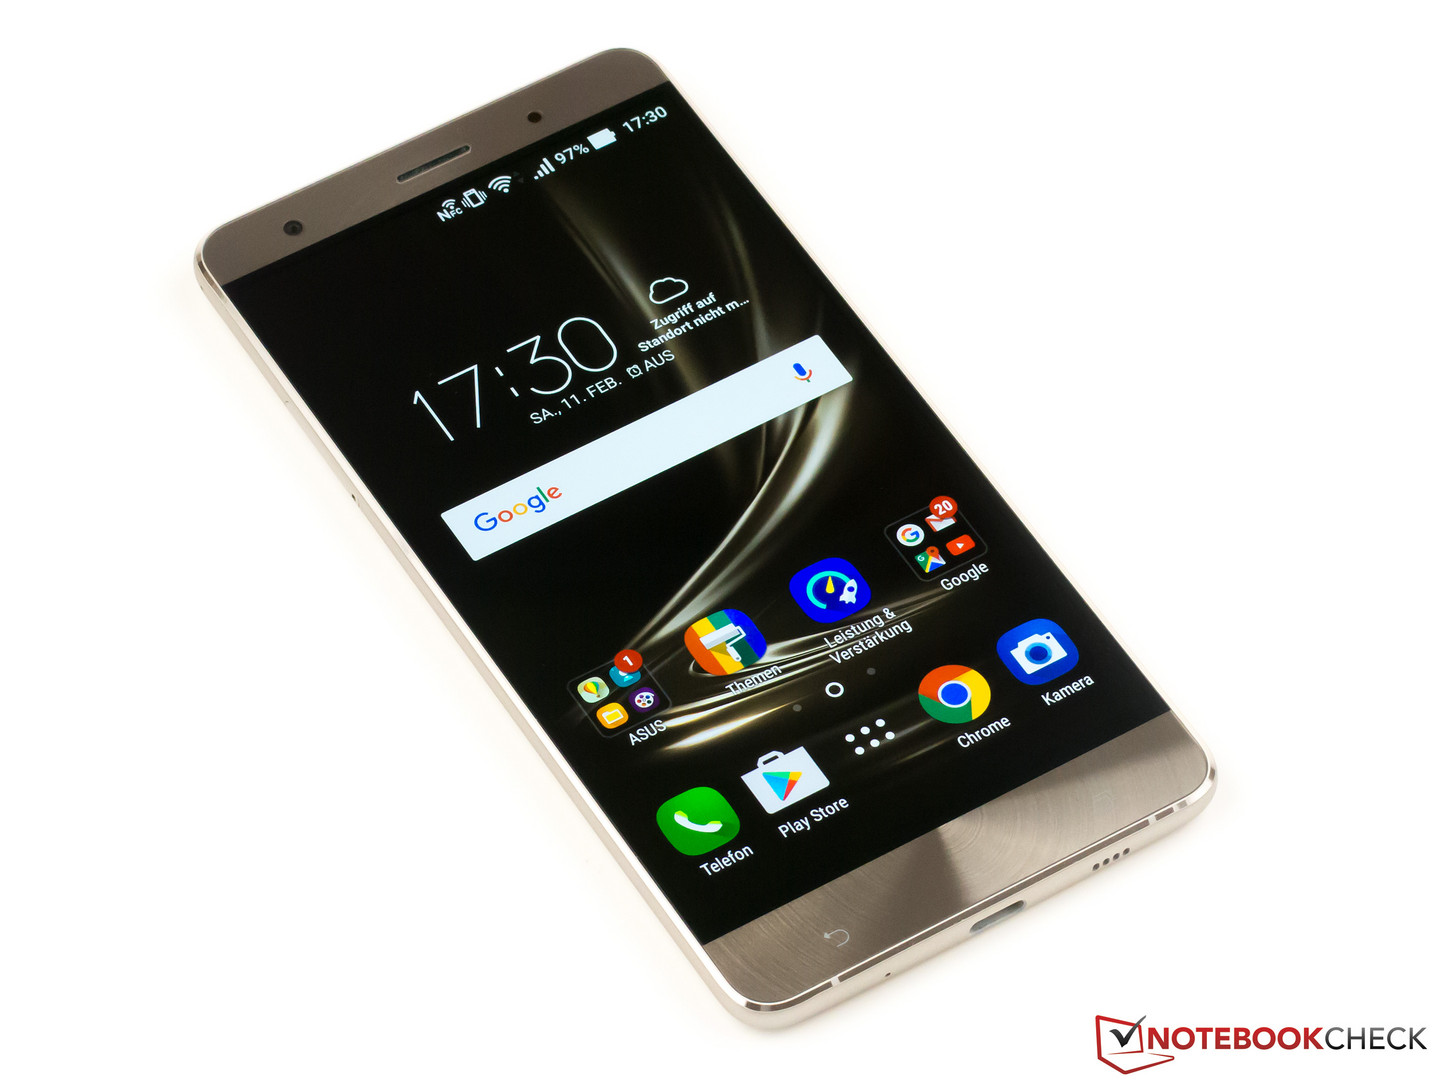 asus zenfone 3 deluxe zs570kl smartphone review. Black Bedroom Furniture Sets. Home Design Ideas